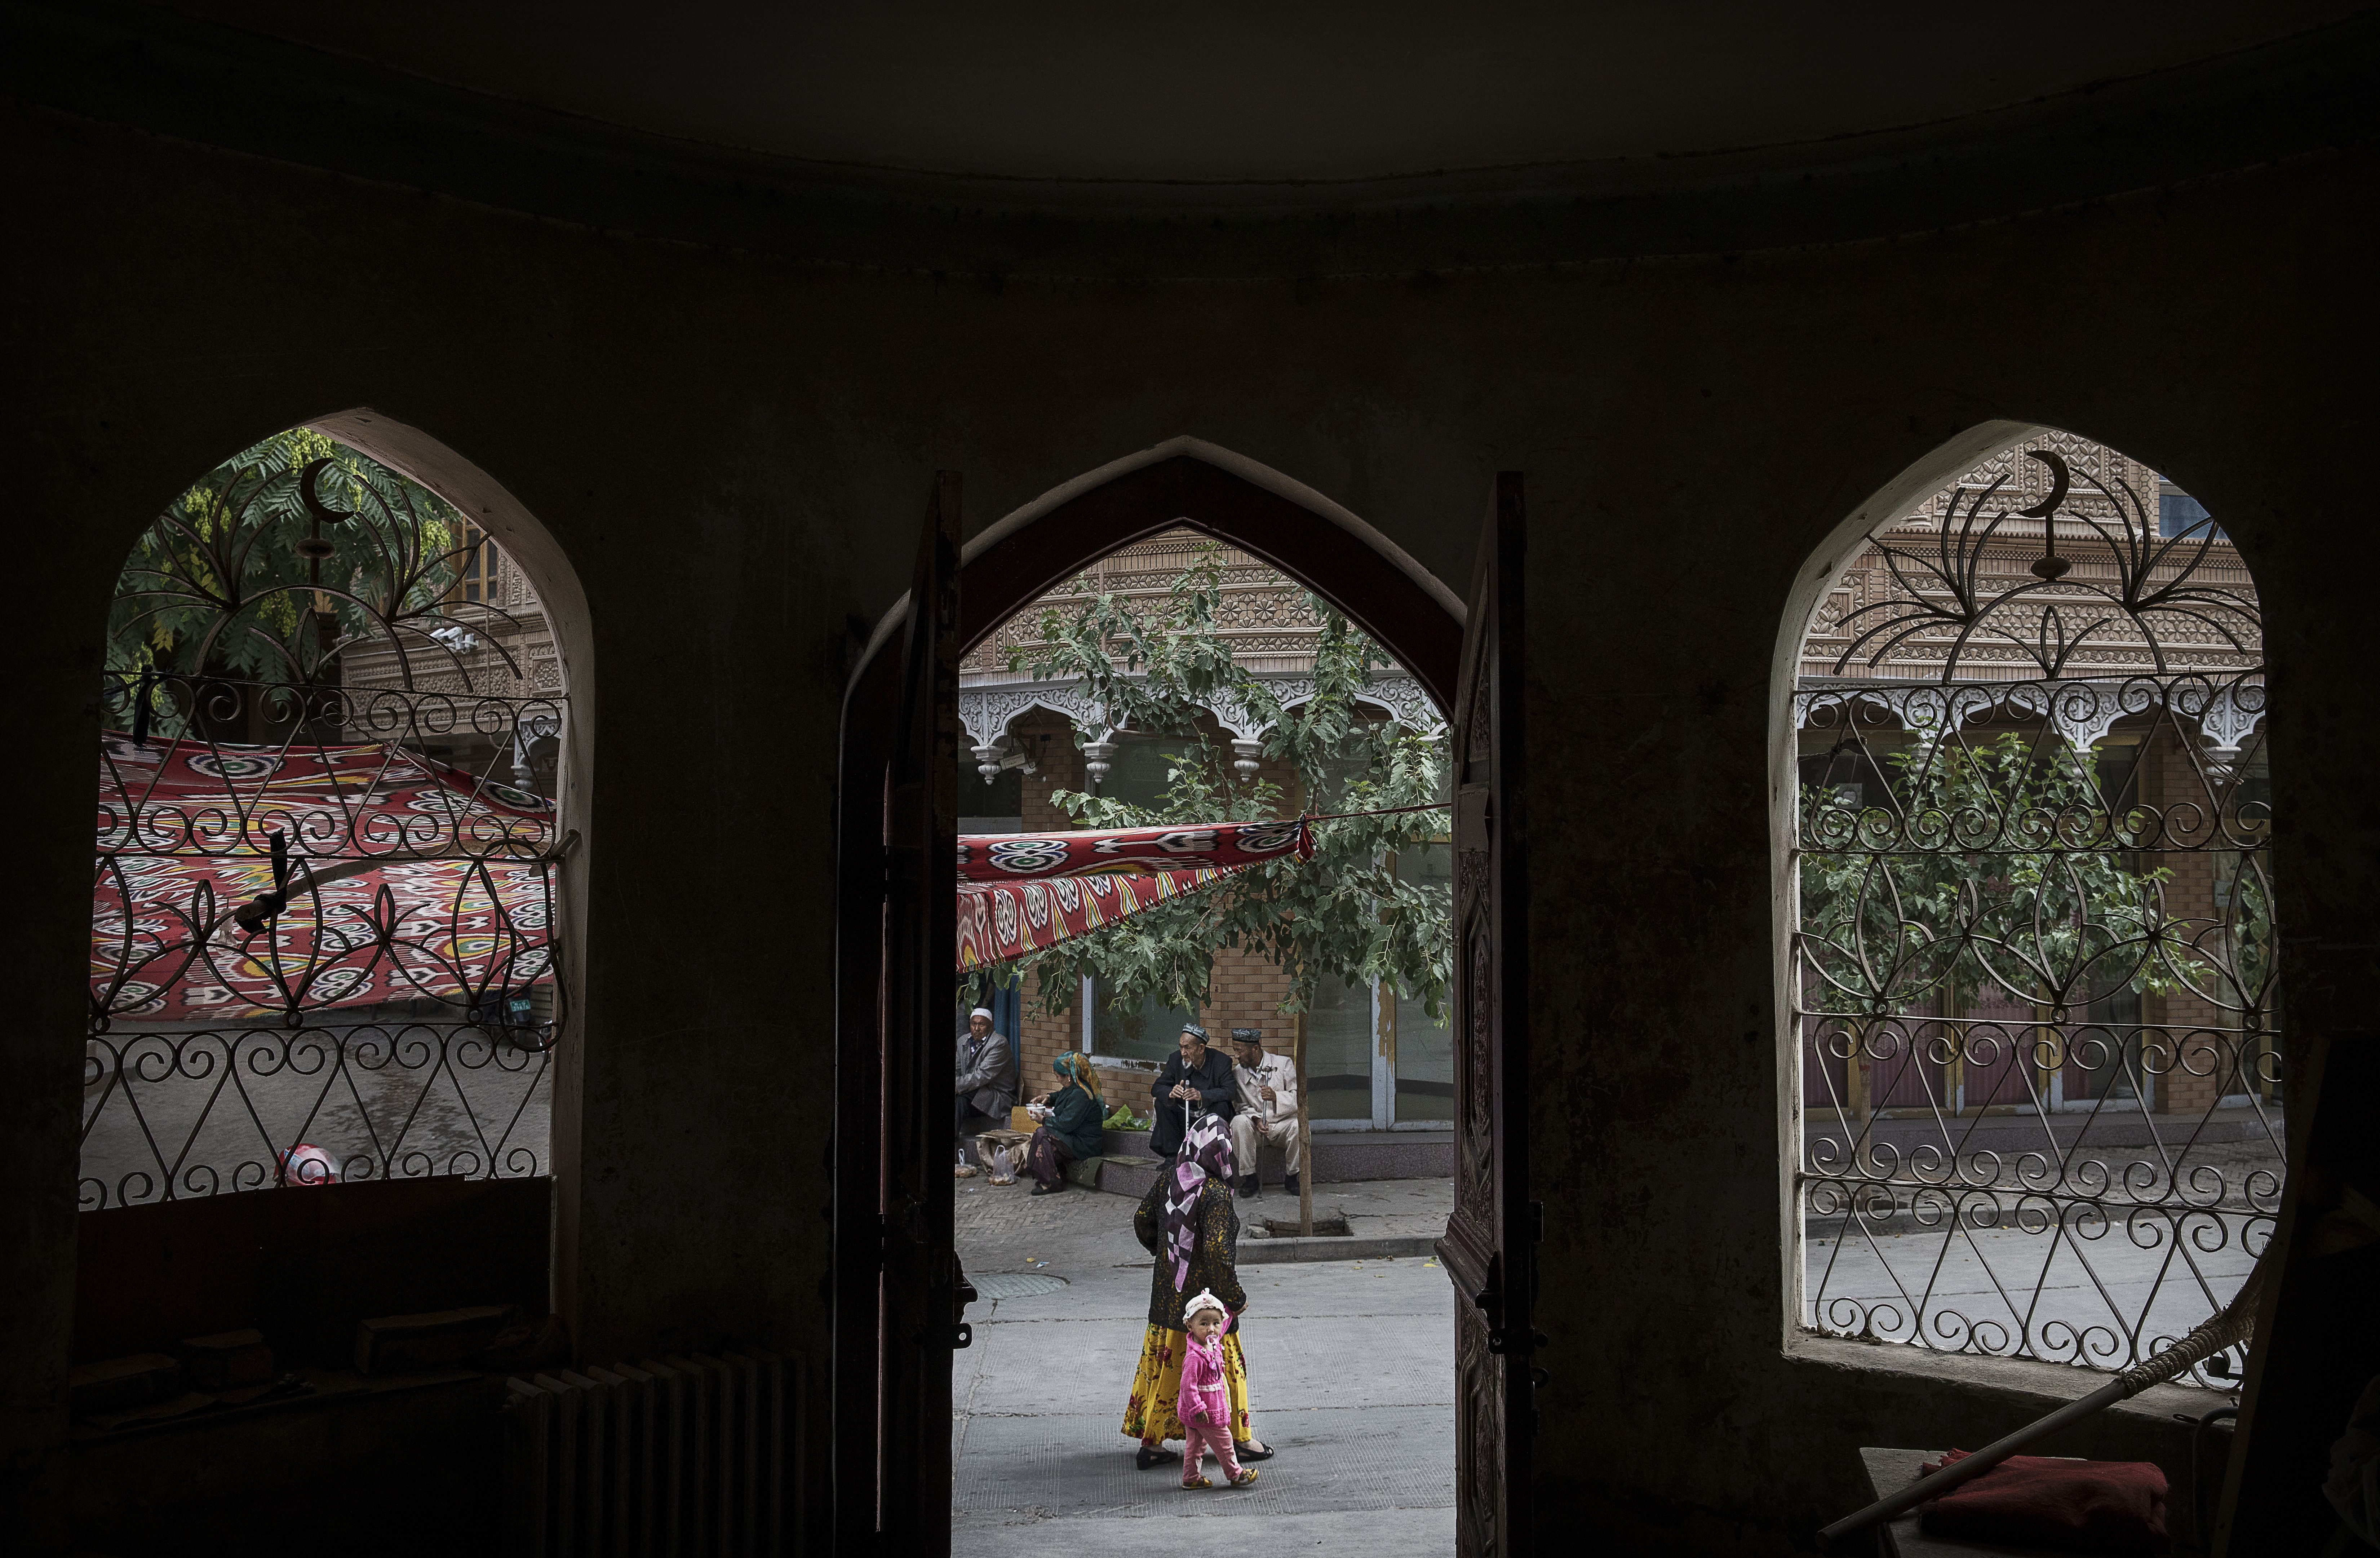 An ethnic Uyghur woman walks by the closed Islamic school on July 1, 2017 in the old town of Kashgar, in the far western Xinjiang province, China. Kashgar has long been considered the cultural heart of Xinjiang for the province's nearly 10 million Muslim Uyghurs. (Photo by Kevin Frayer/Getty Images)